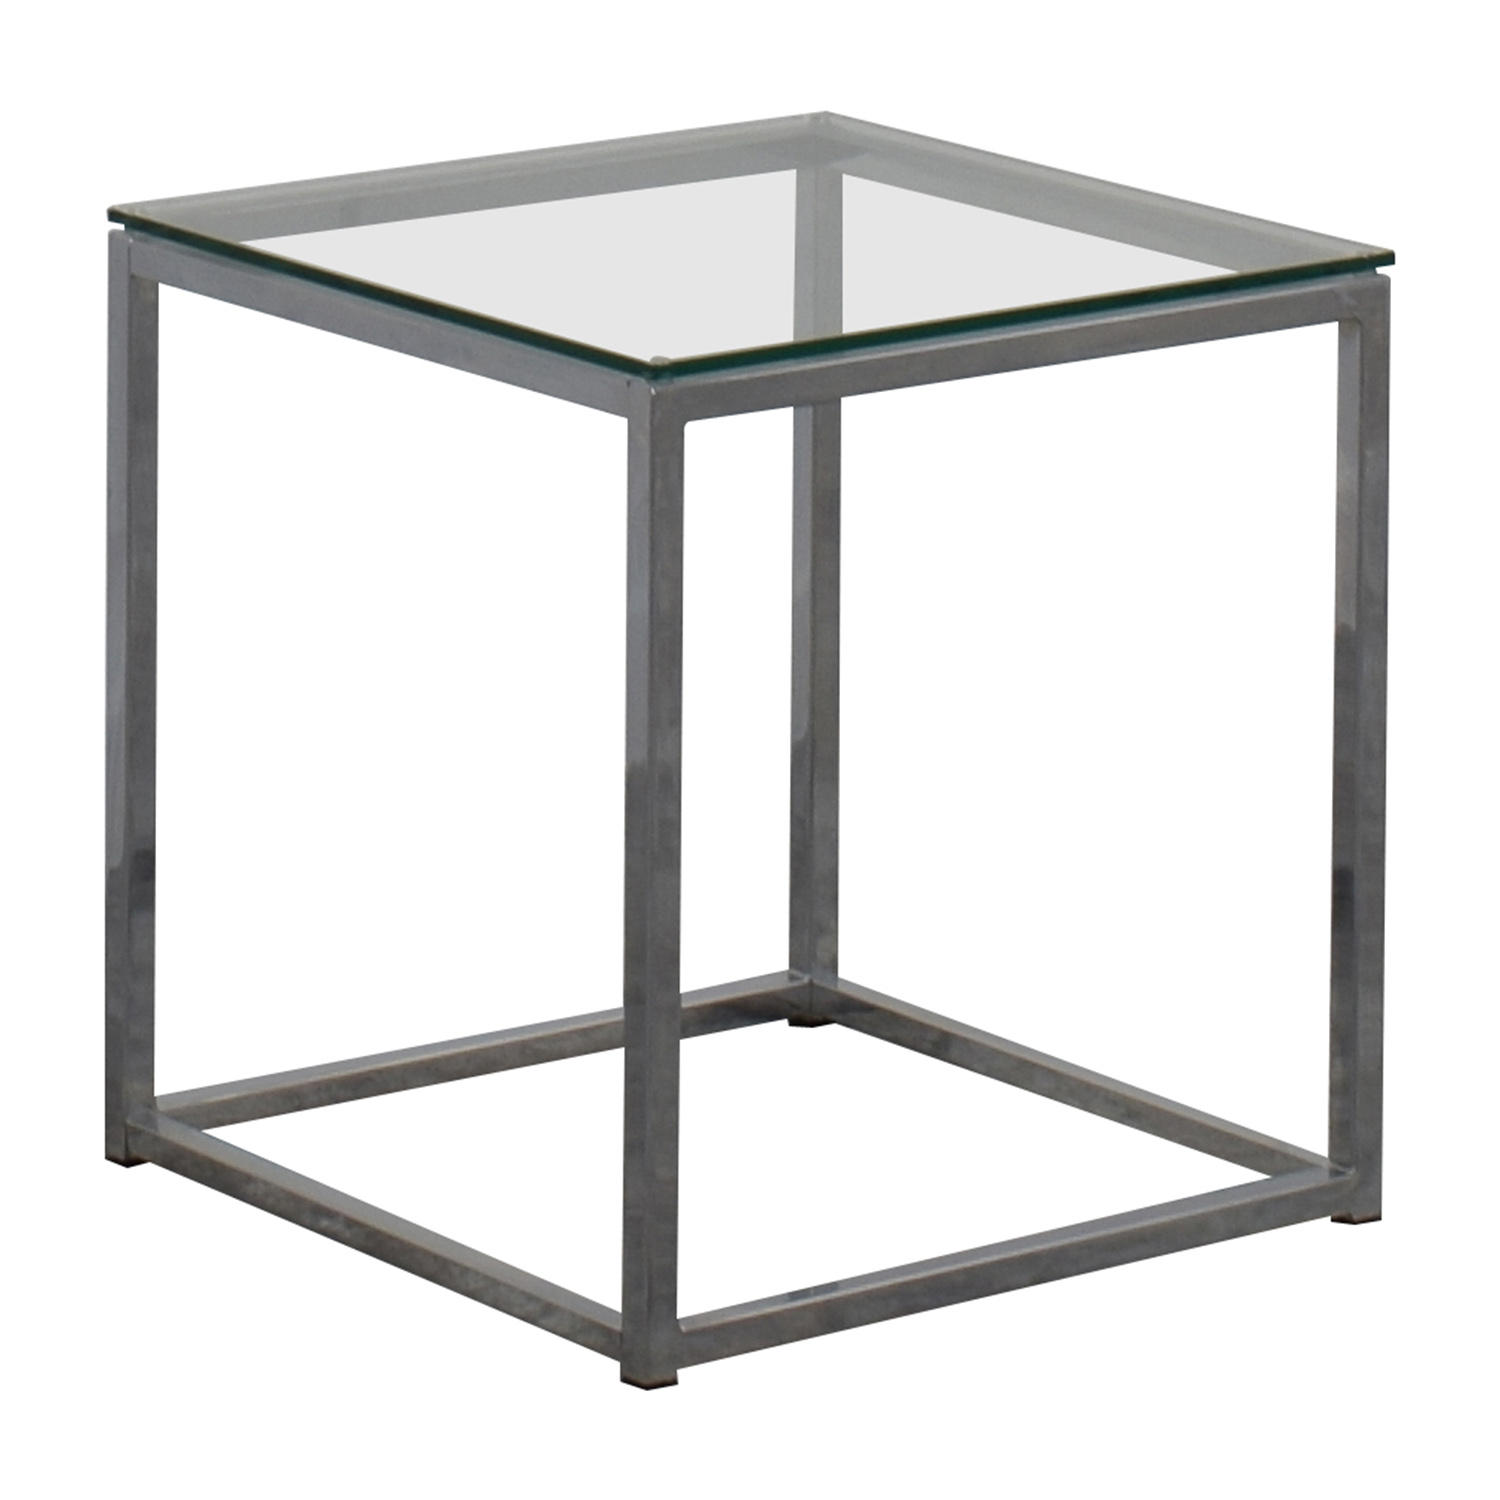 80 off cb2 cb2 smart glass top side table tables for Glass top side table